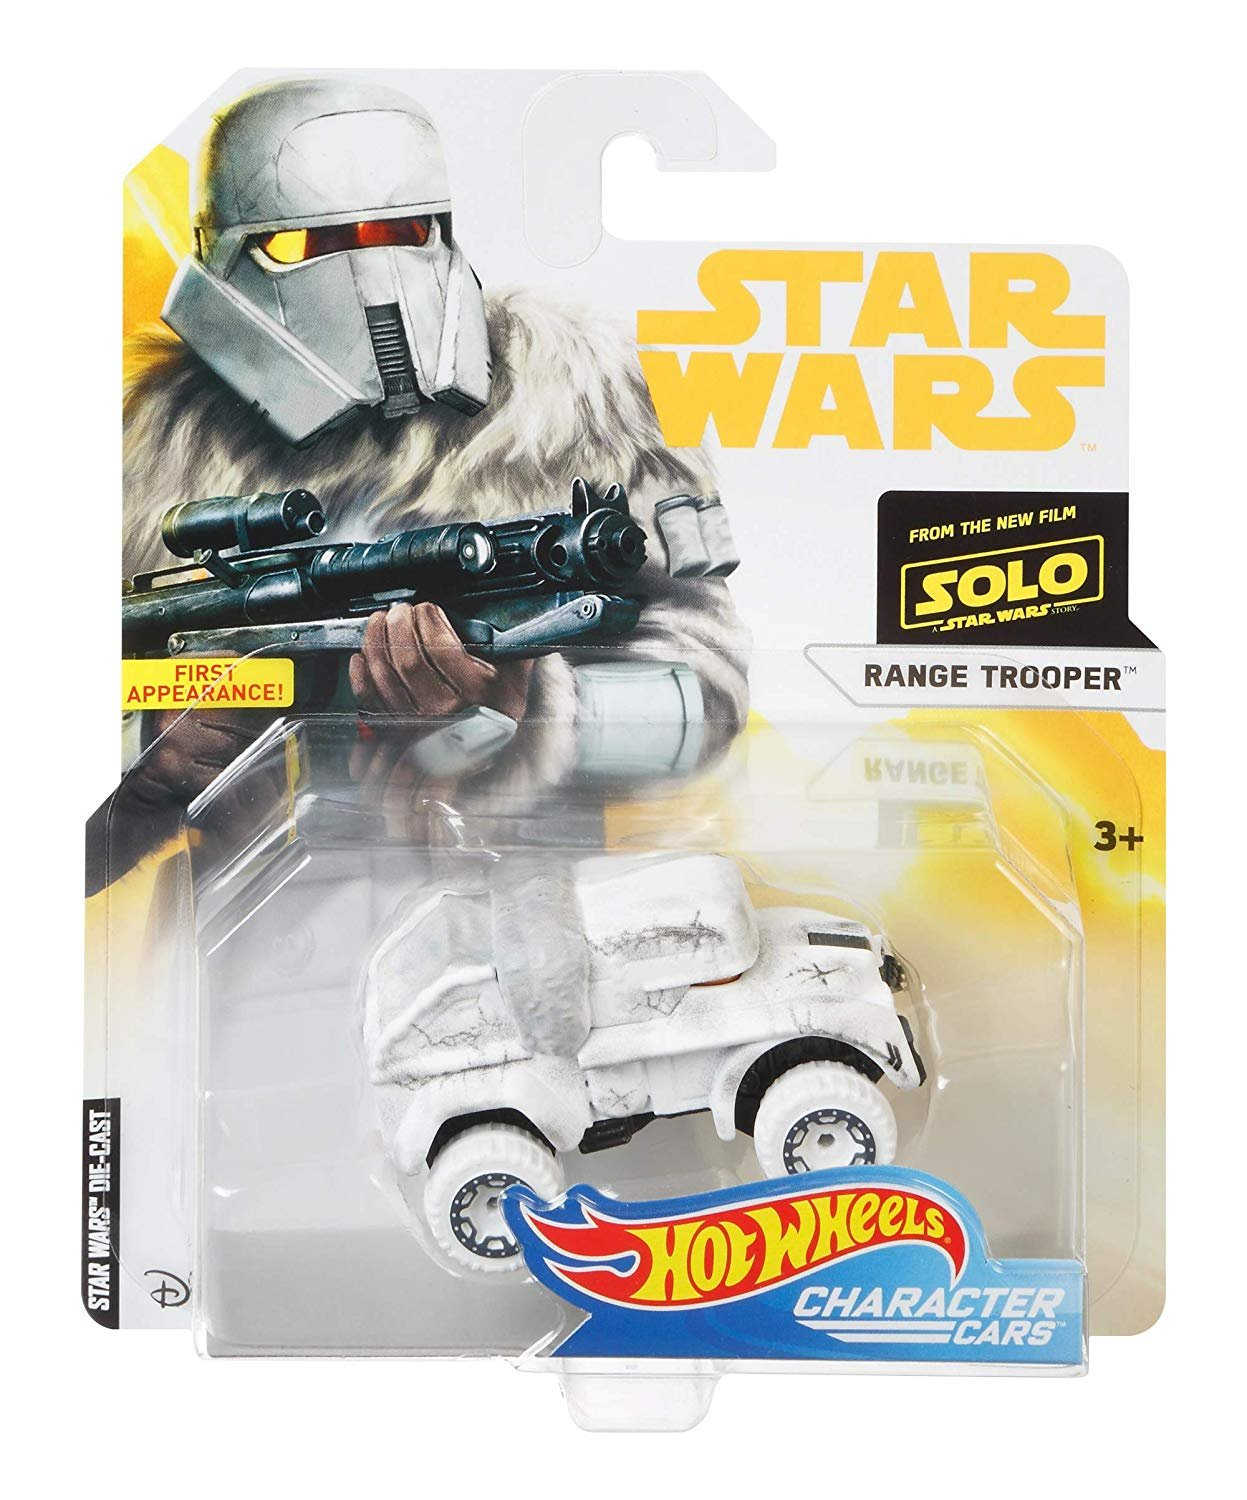 Hot Wheels Star Wars Solo Cars